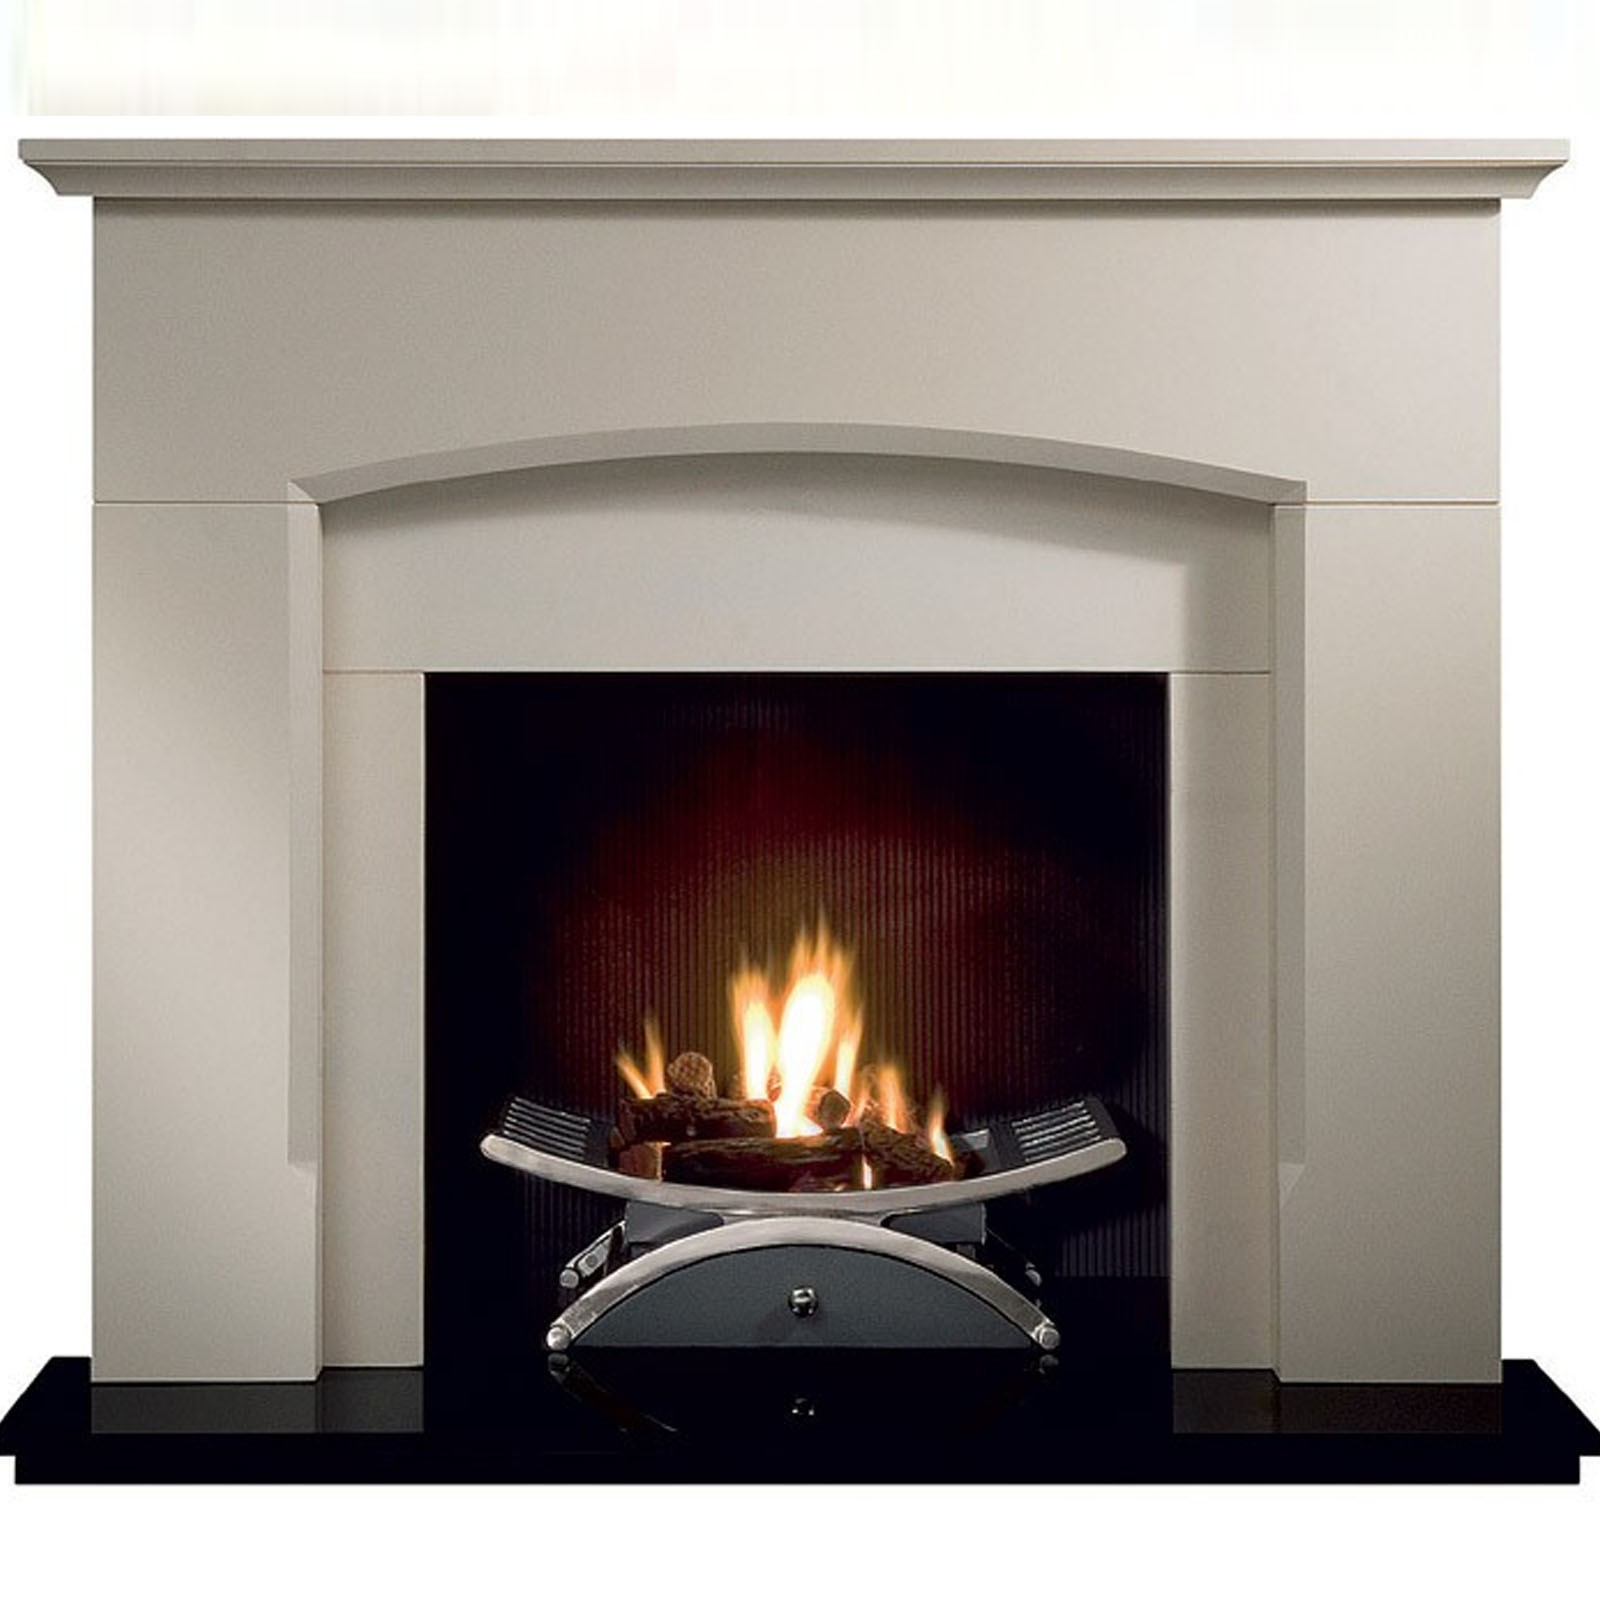 Contemporary Style Gallery Dacre Stone Fireplace